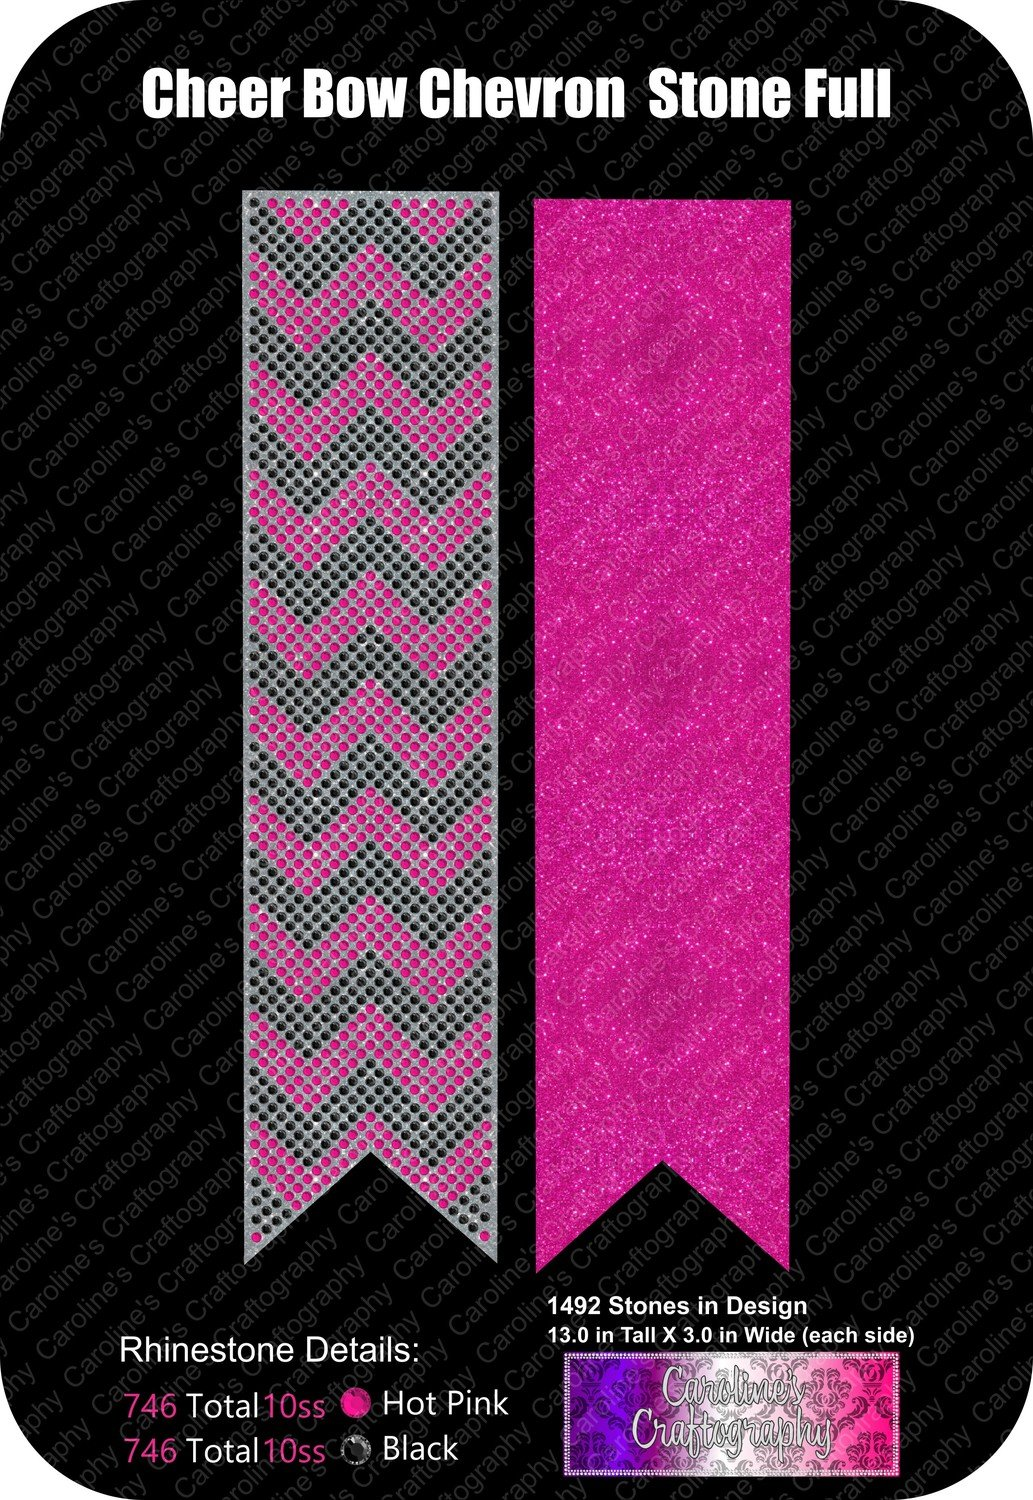 Chevron Full Cheer Bow 3in Stone